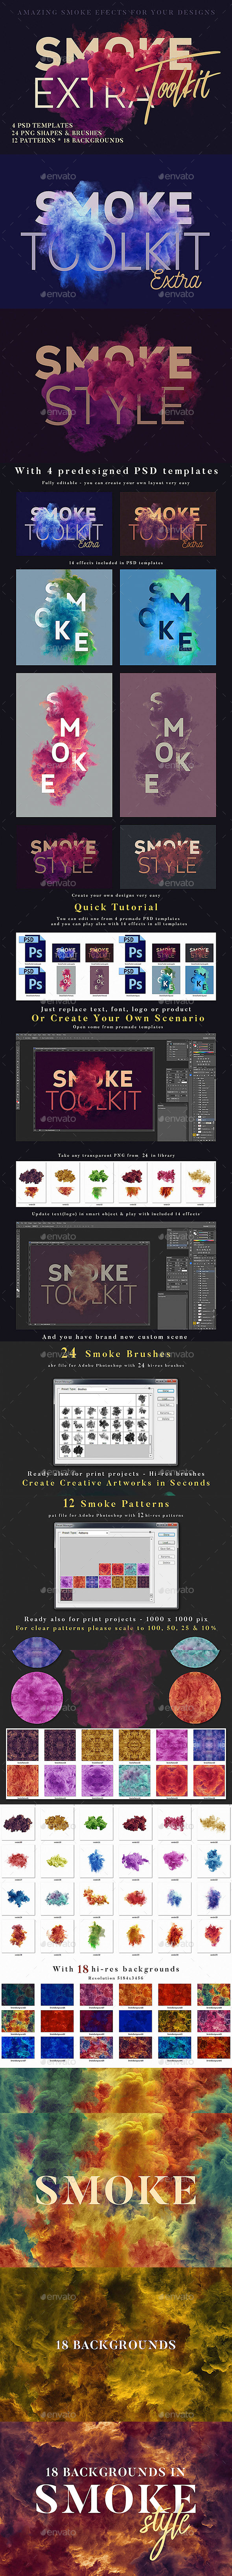 Smoke Graphics, Designs & Templates from GraphicRiver